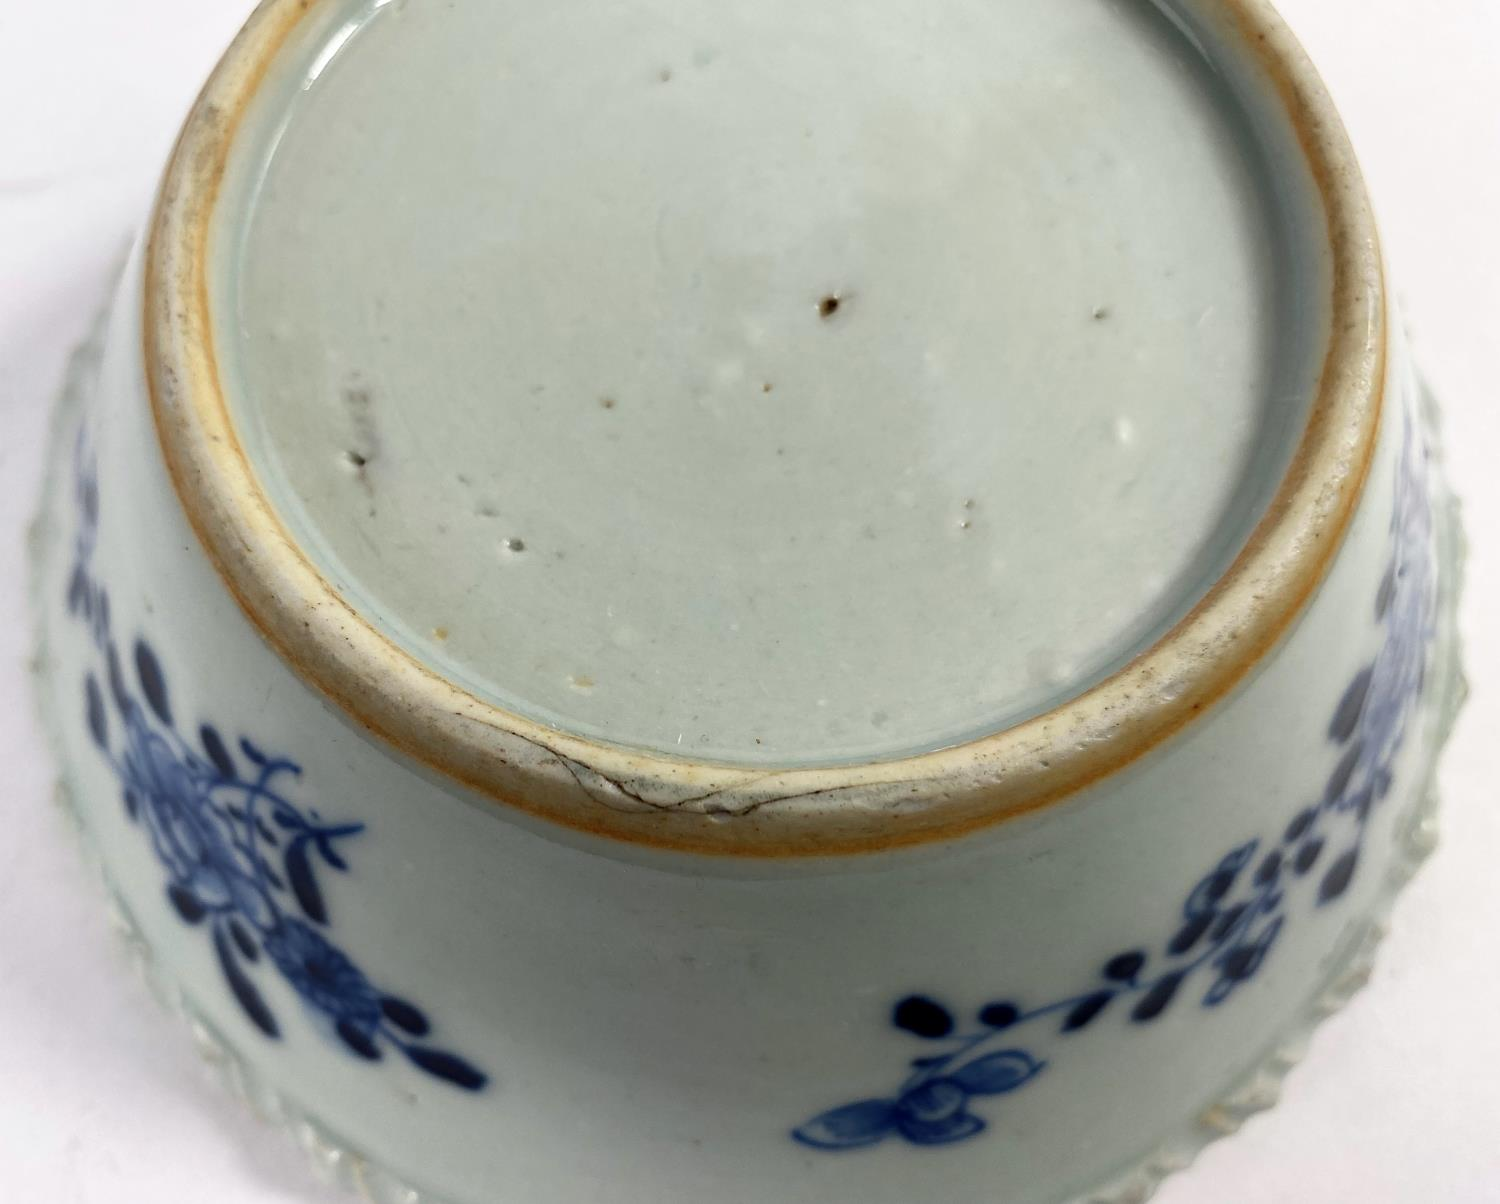 An 18th century Chinese blue and white porcelain bowl with pie crust rim decorated with antiques and - Image 5 of 5